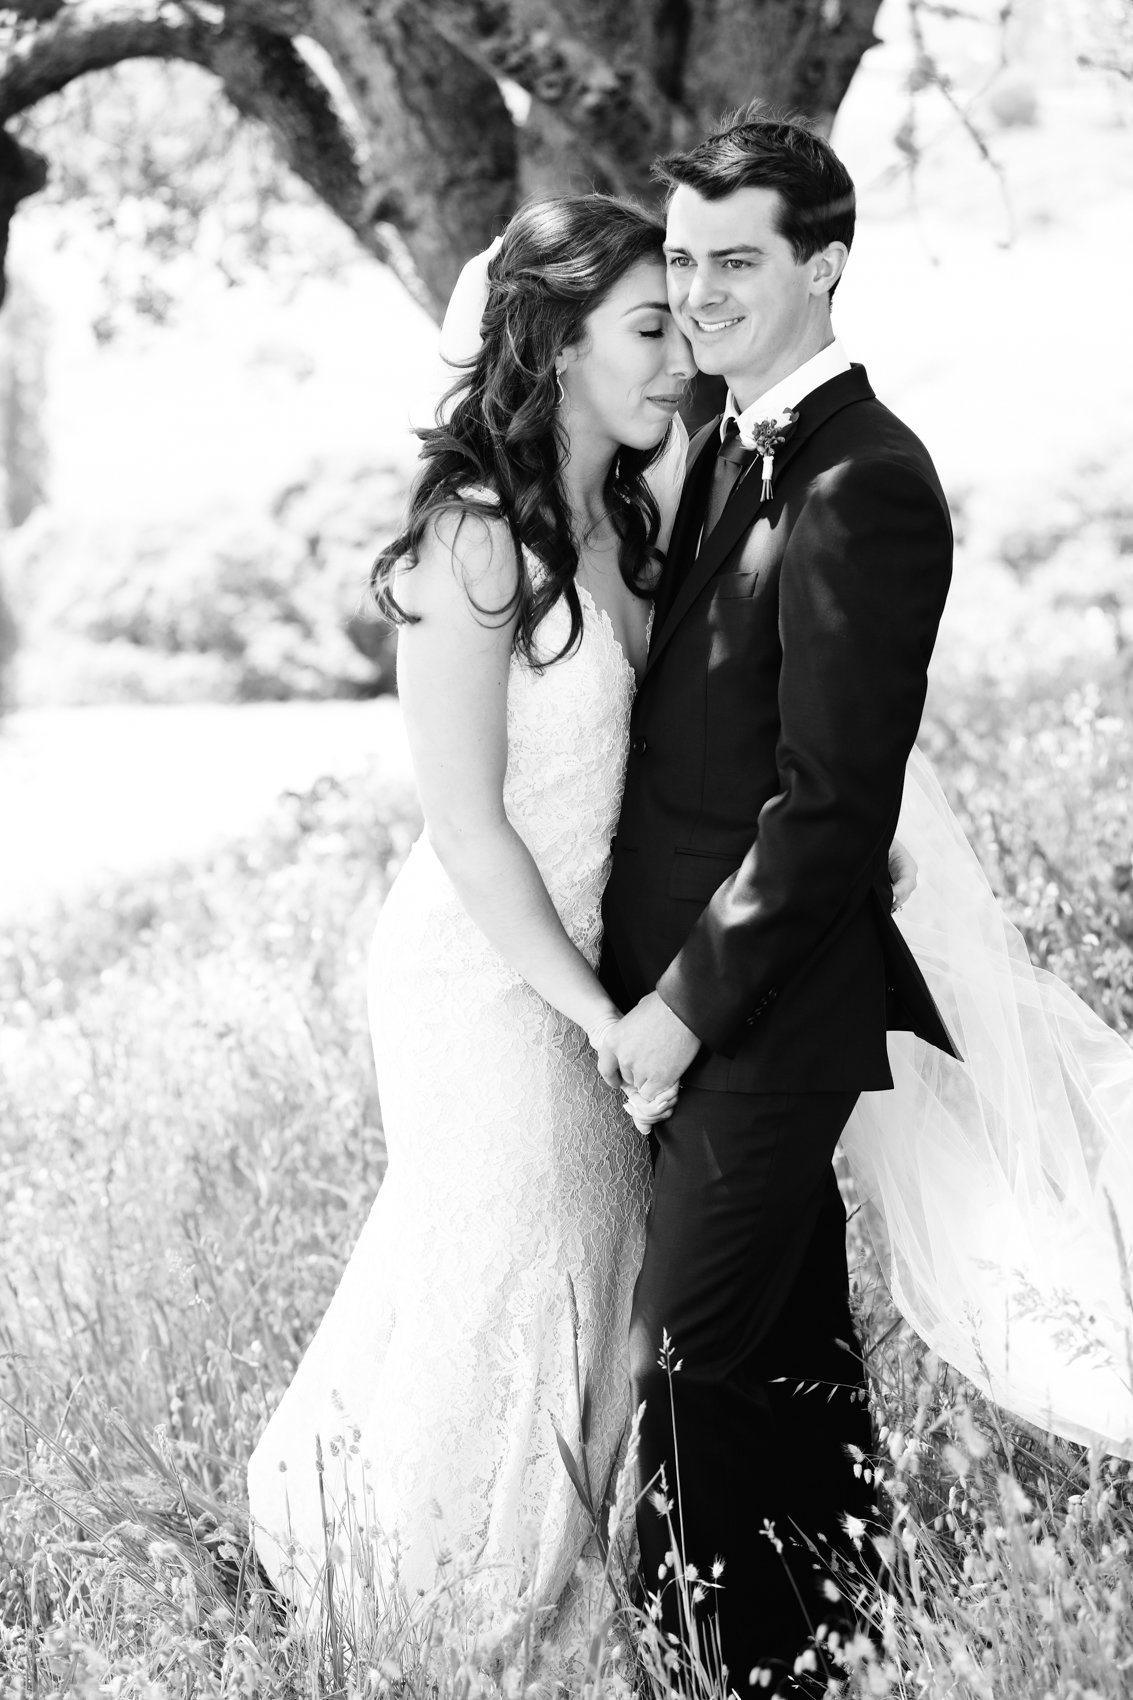 Napa Valley Wedding Photography, Black and White of the Bride and Grooms First Look